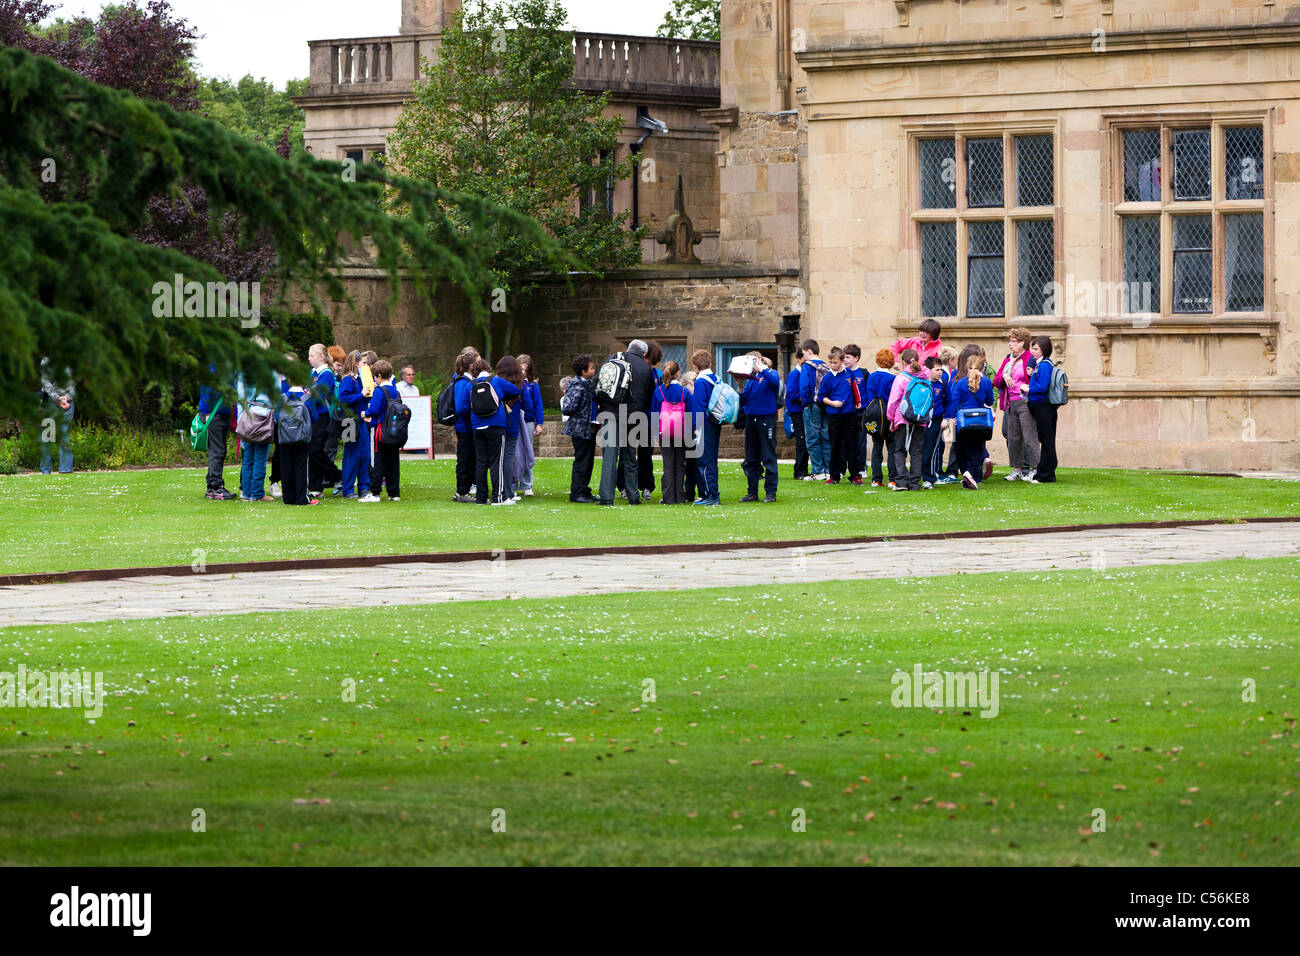 School children on a day out - Stock Image